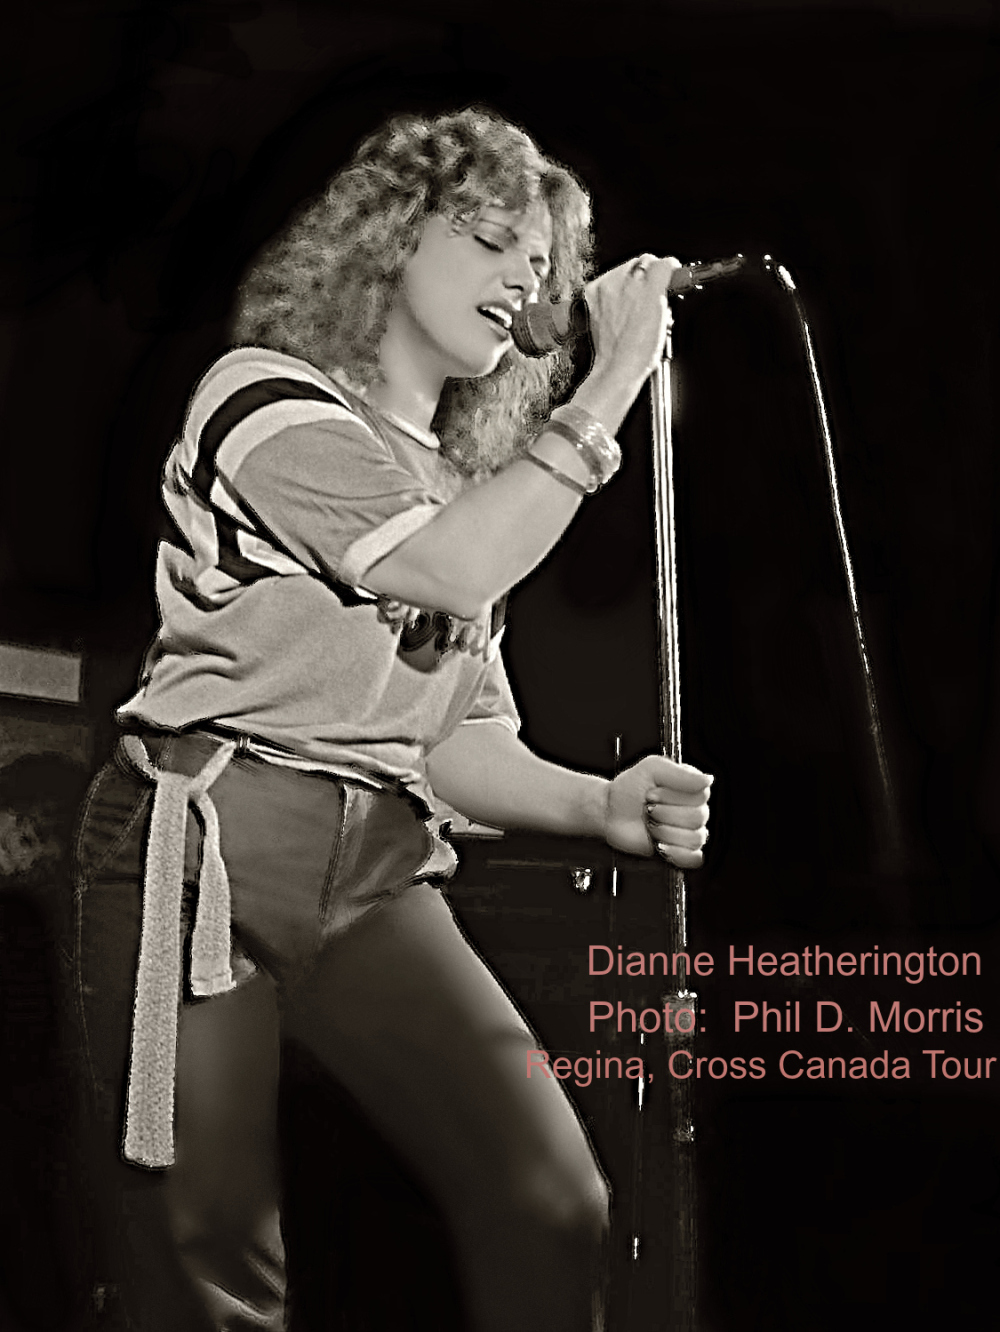 Dianne Heatherington